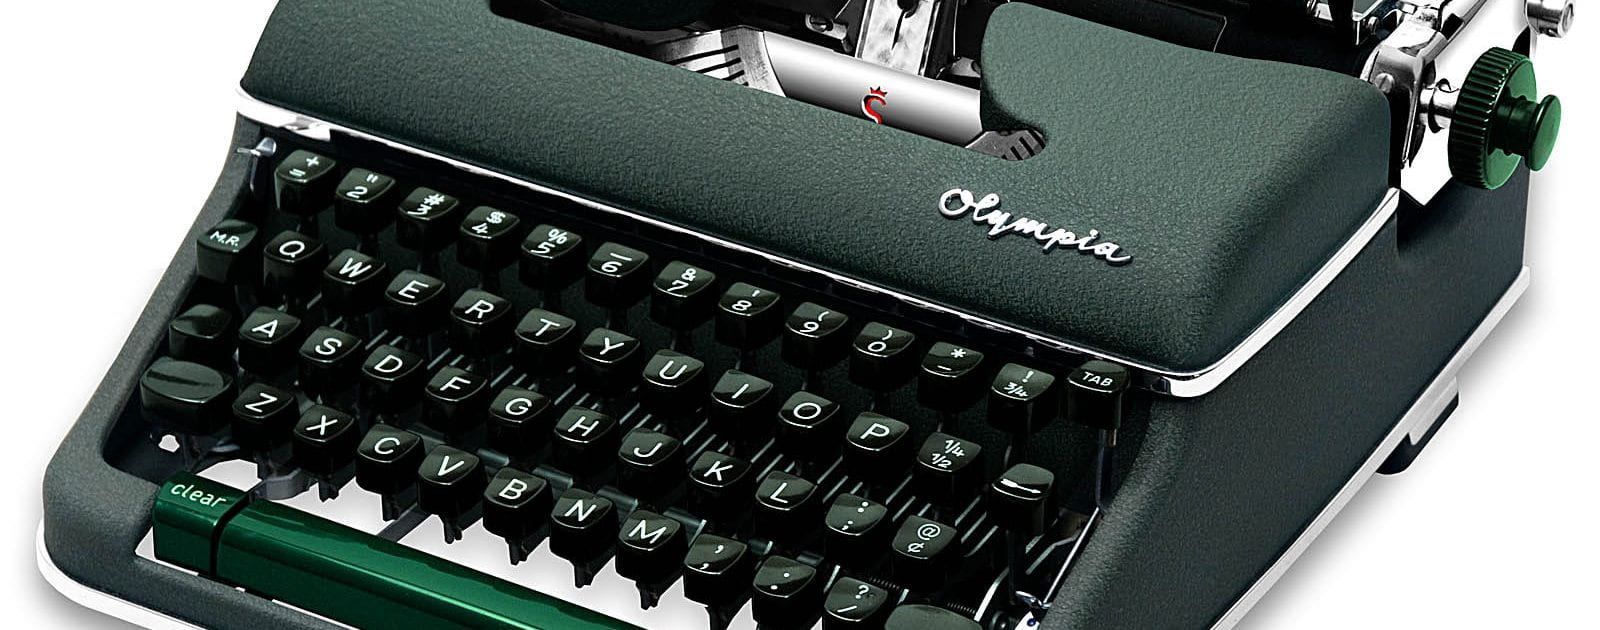 Photograph of a typewriter